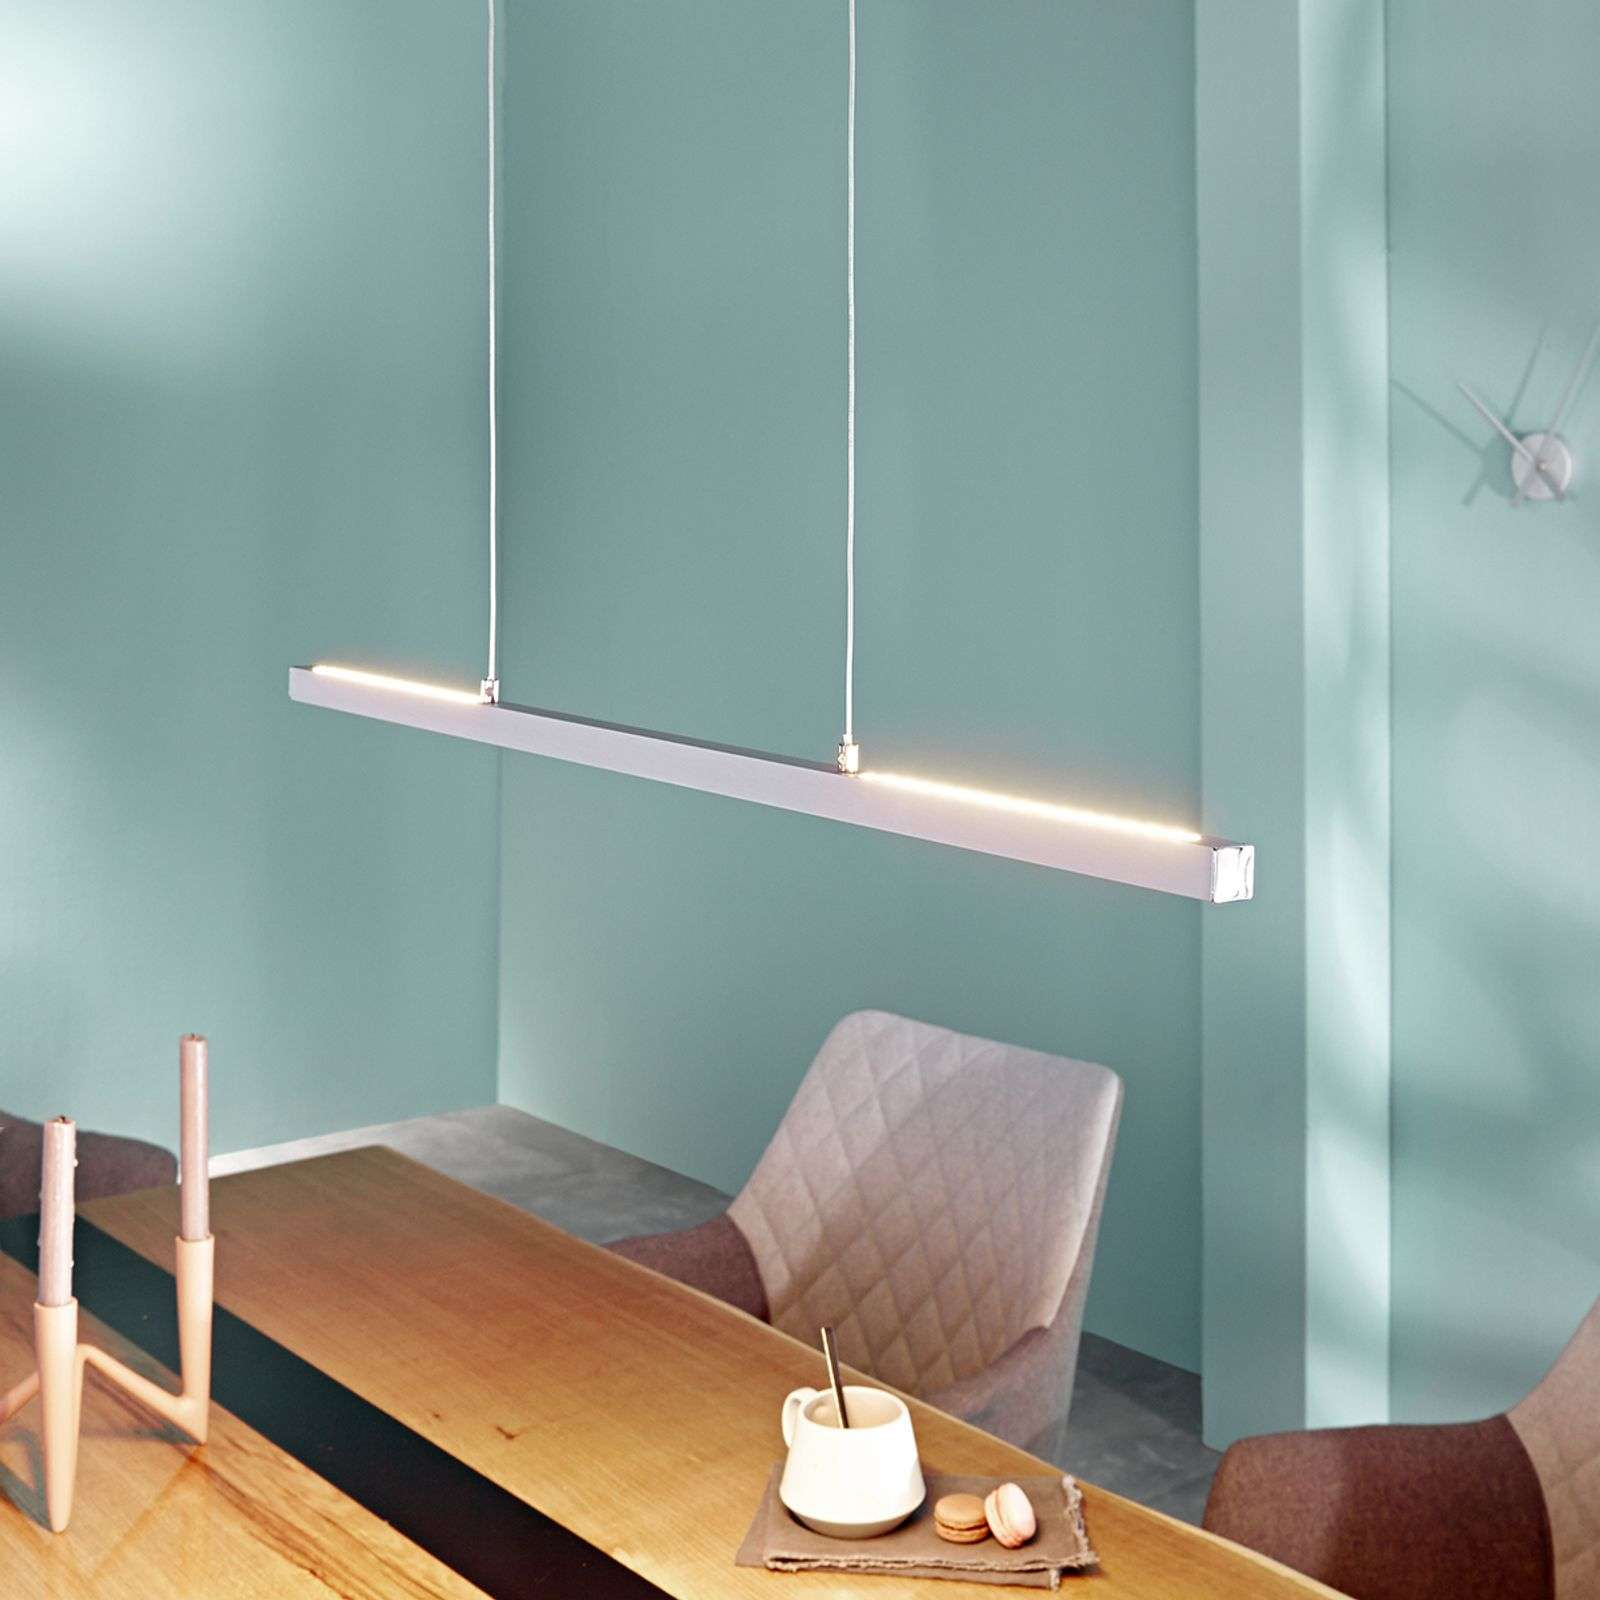 Suspension LED Rico, dimmable, alu mat, 78cm